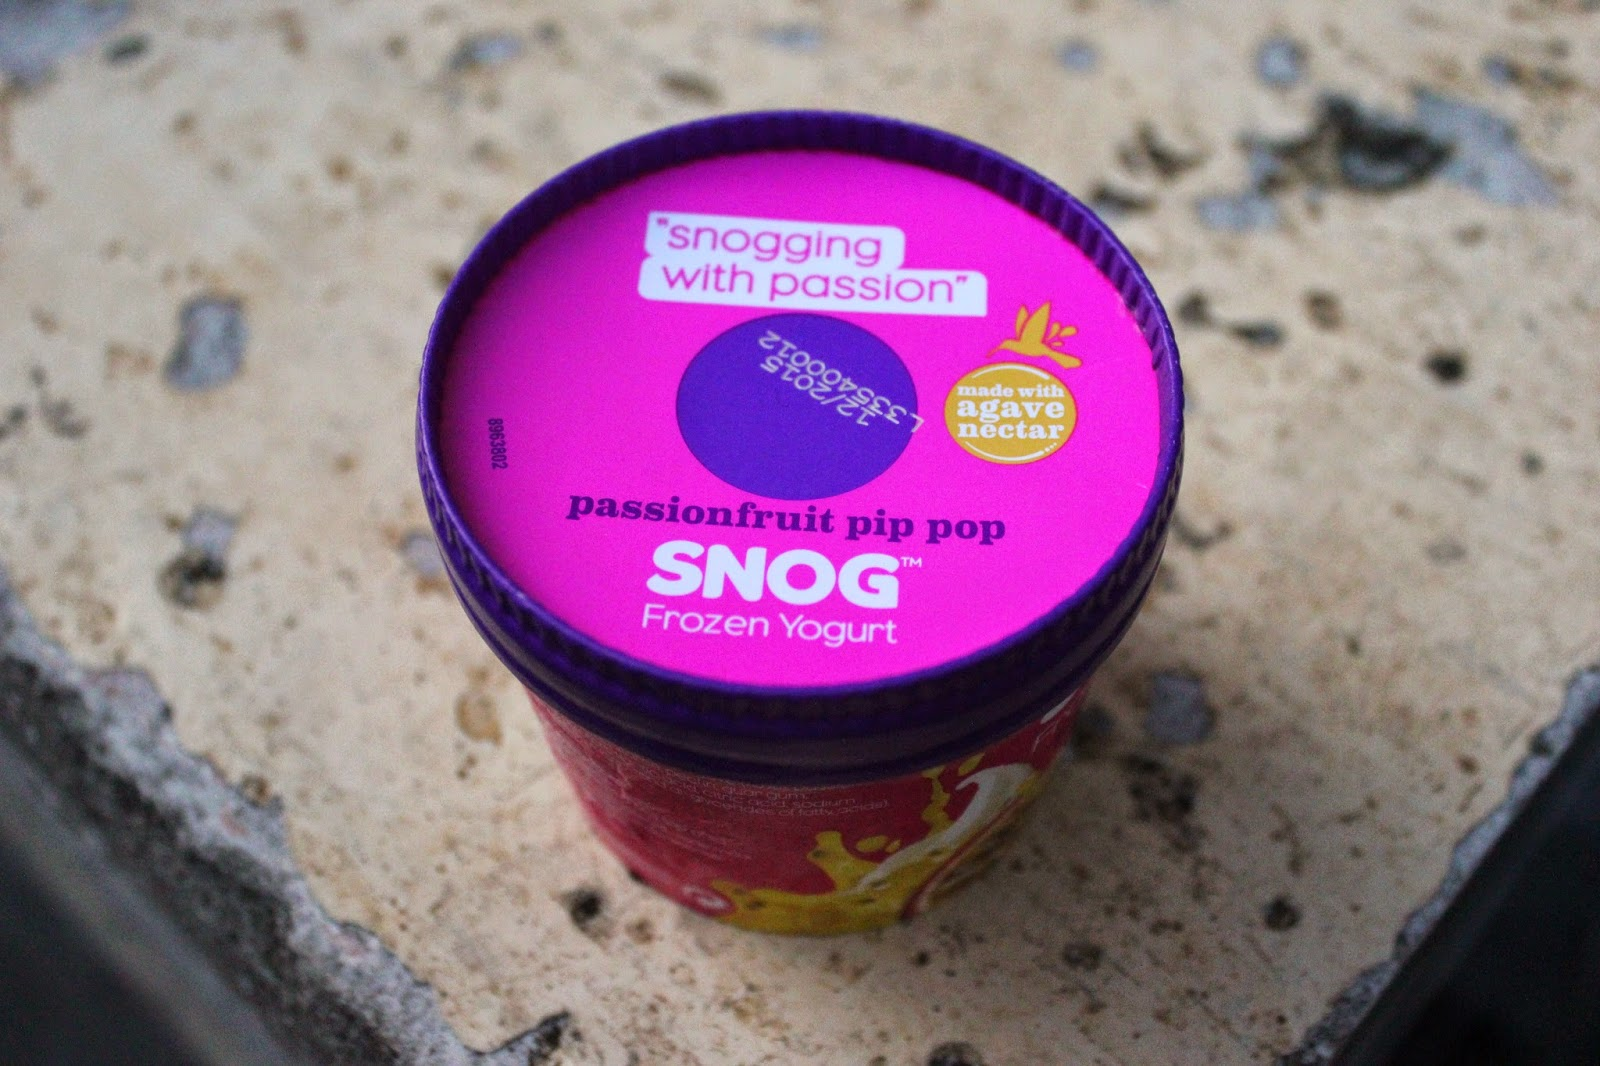 london-fashion-week-2014-lfw-spring-summer-2015-blogger-fashion-freemasons hall-fashion-scout-snog-frozen-yoghurt-food-